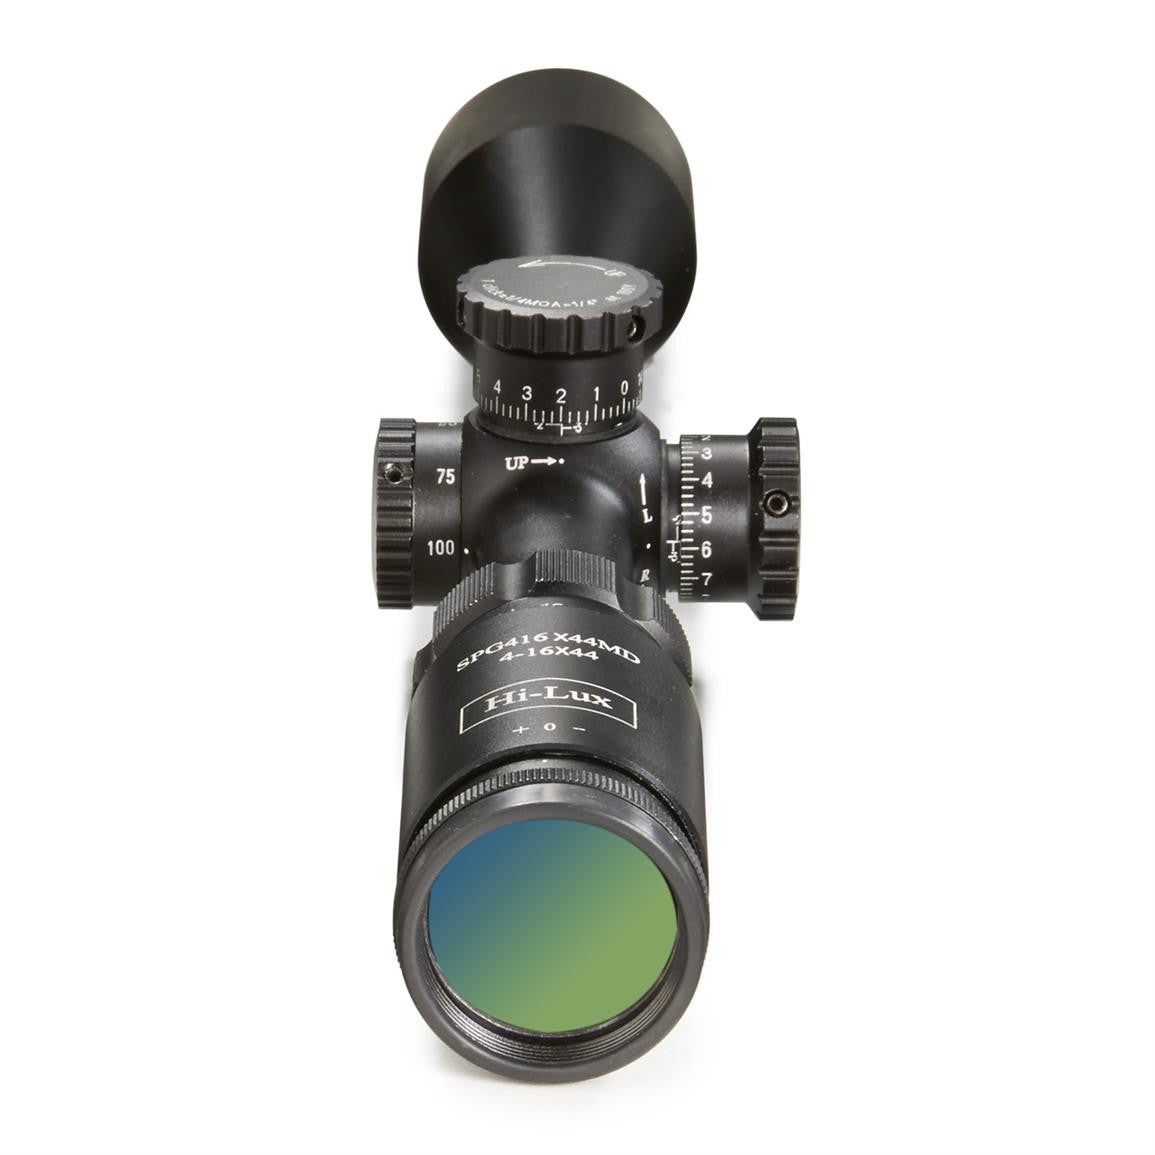 SPG416X44MD rifle scope eyepiece view